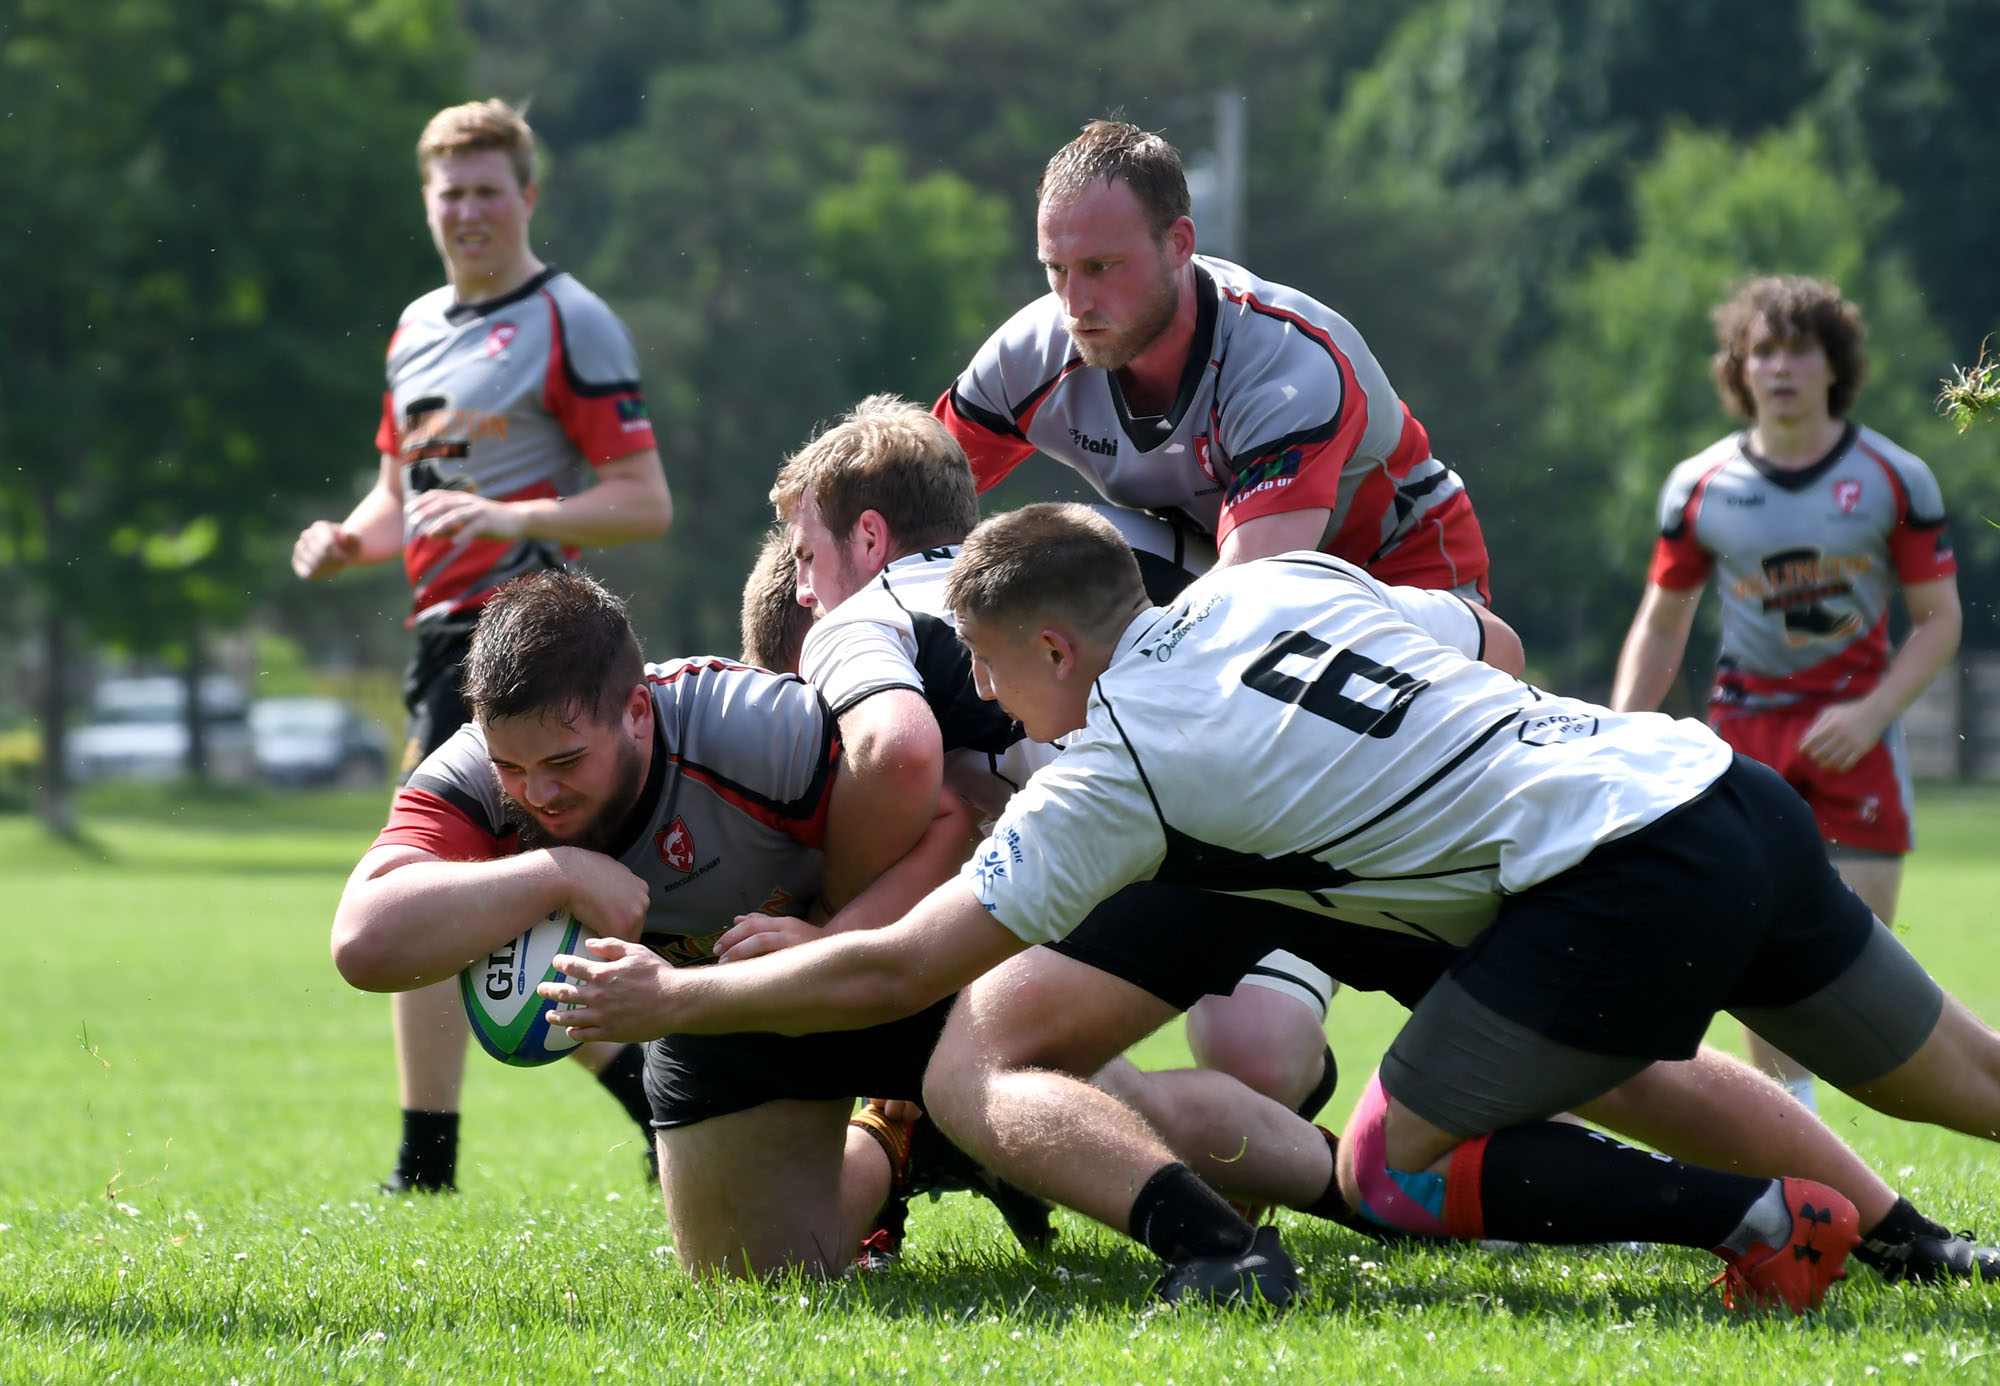 Photos: Guelph Redcoats-Sarnia NRU men A1 rugby